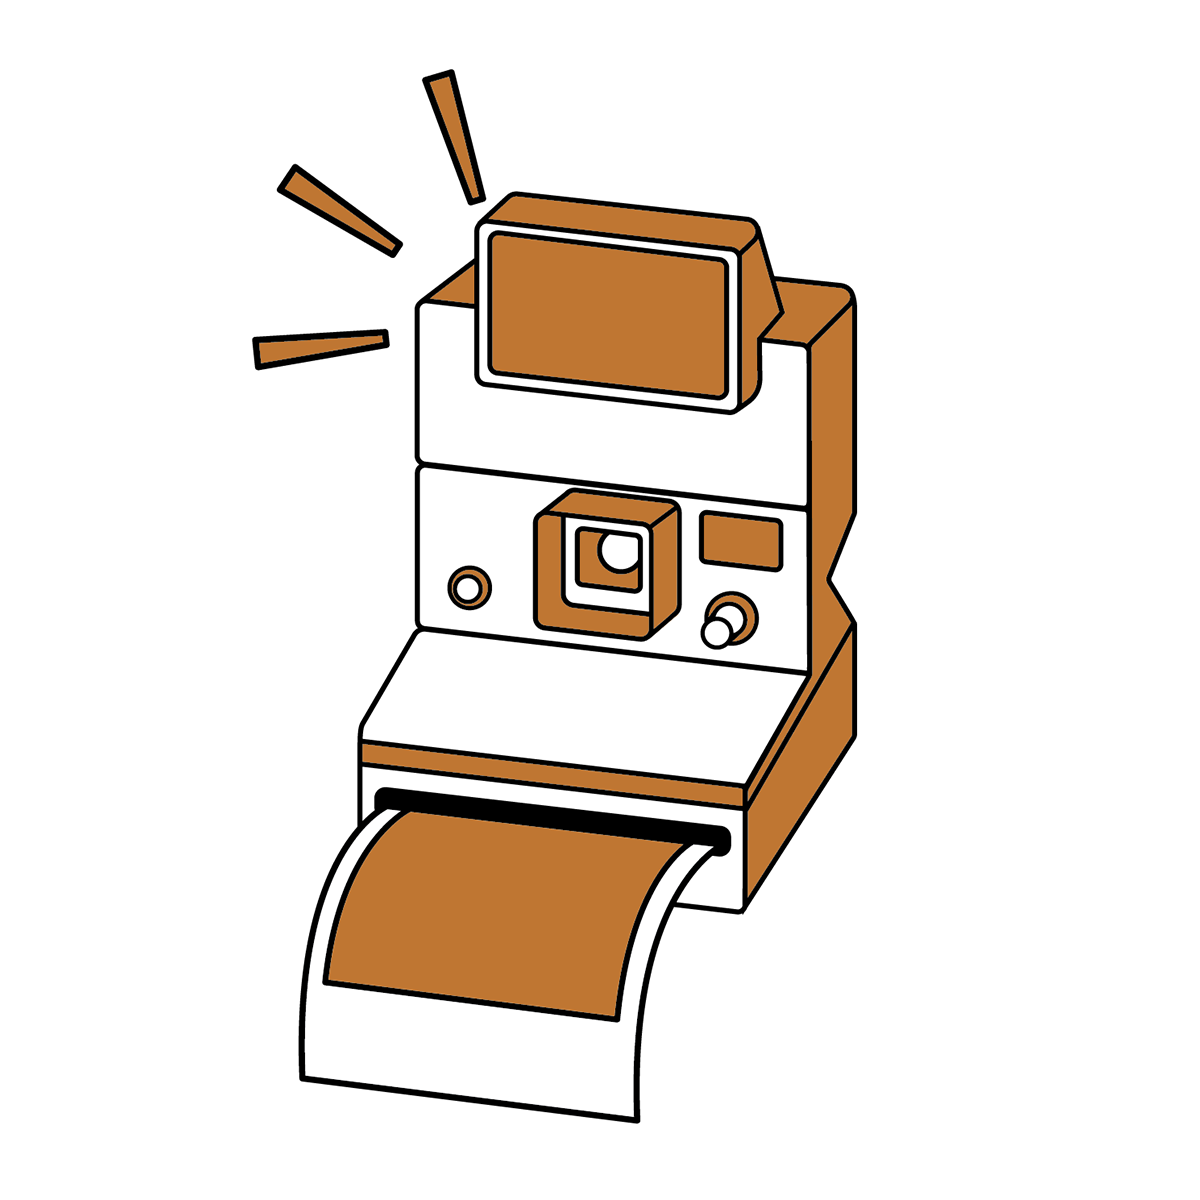 Plastbyggesett, icm-ds3504-wehrmacht-personell-cars-scale-1-35, ICMDS3504